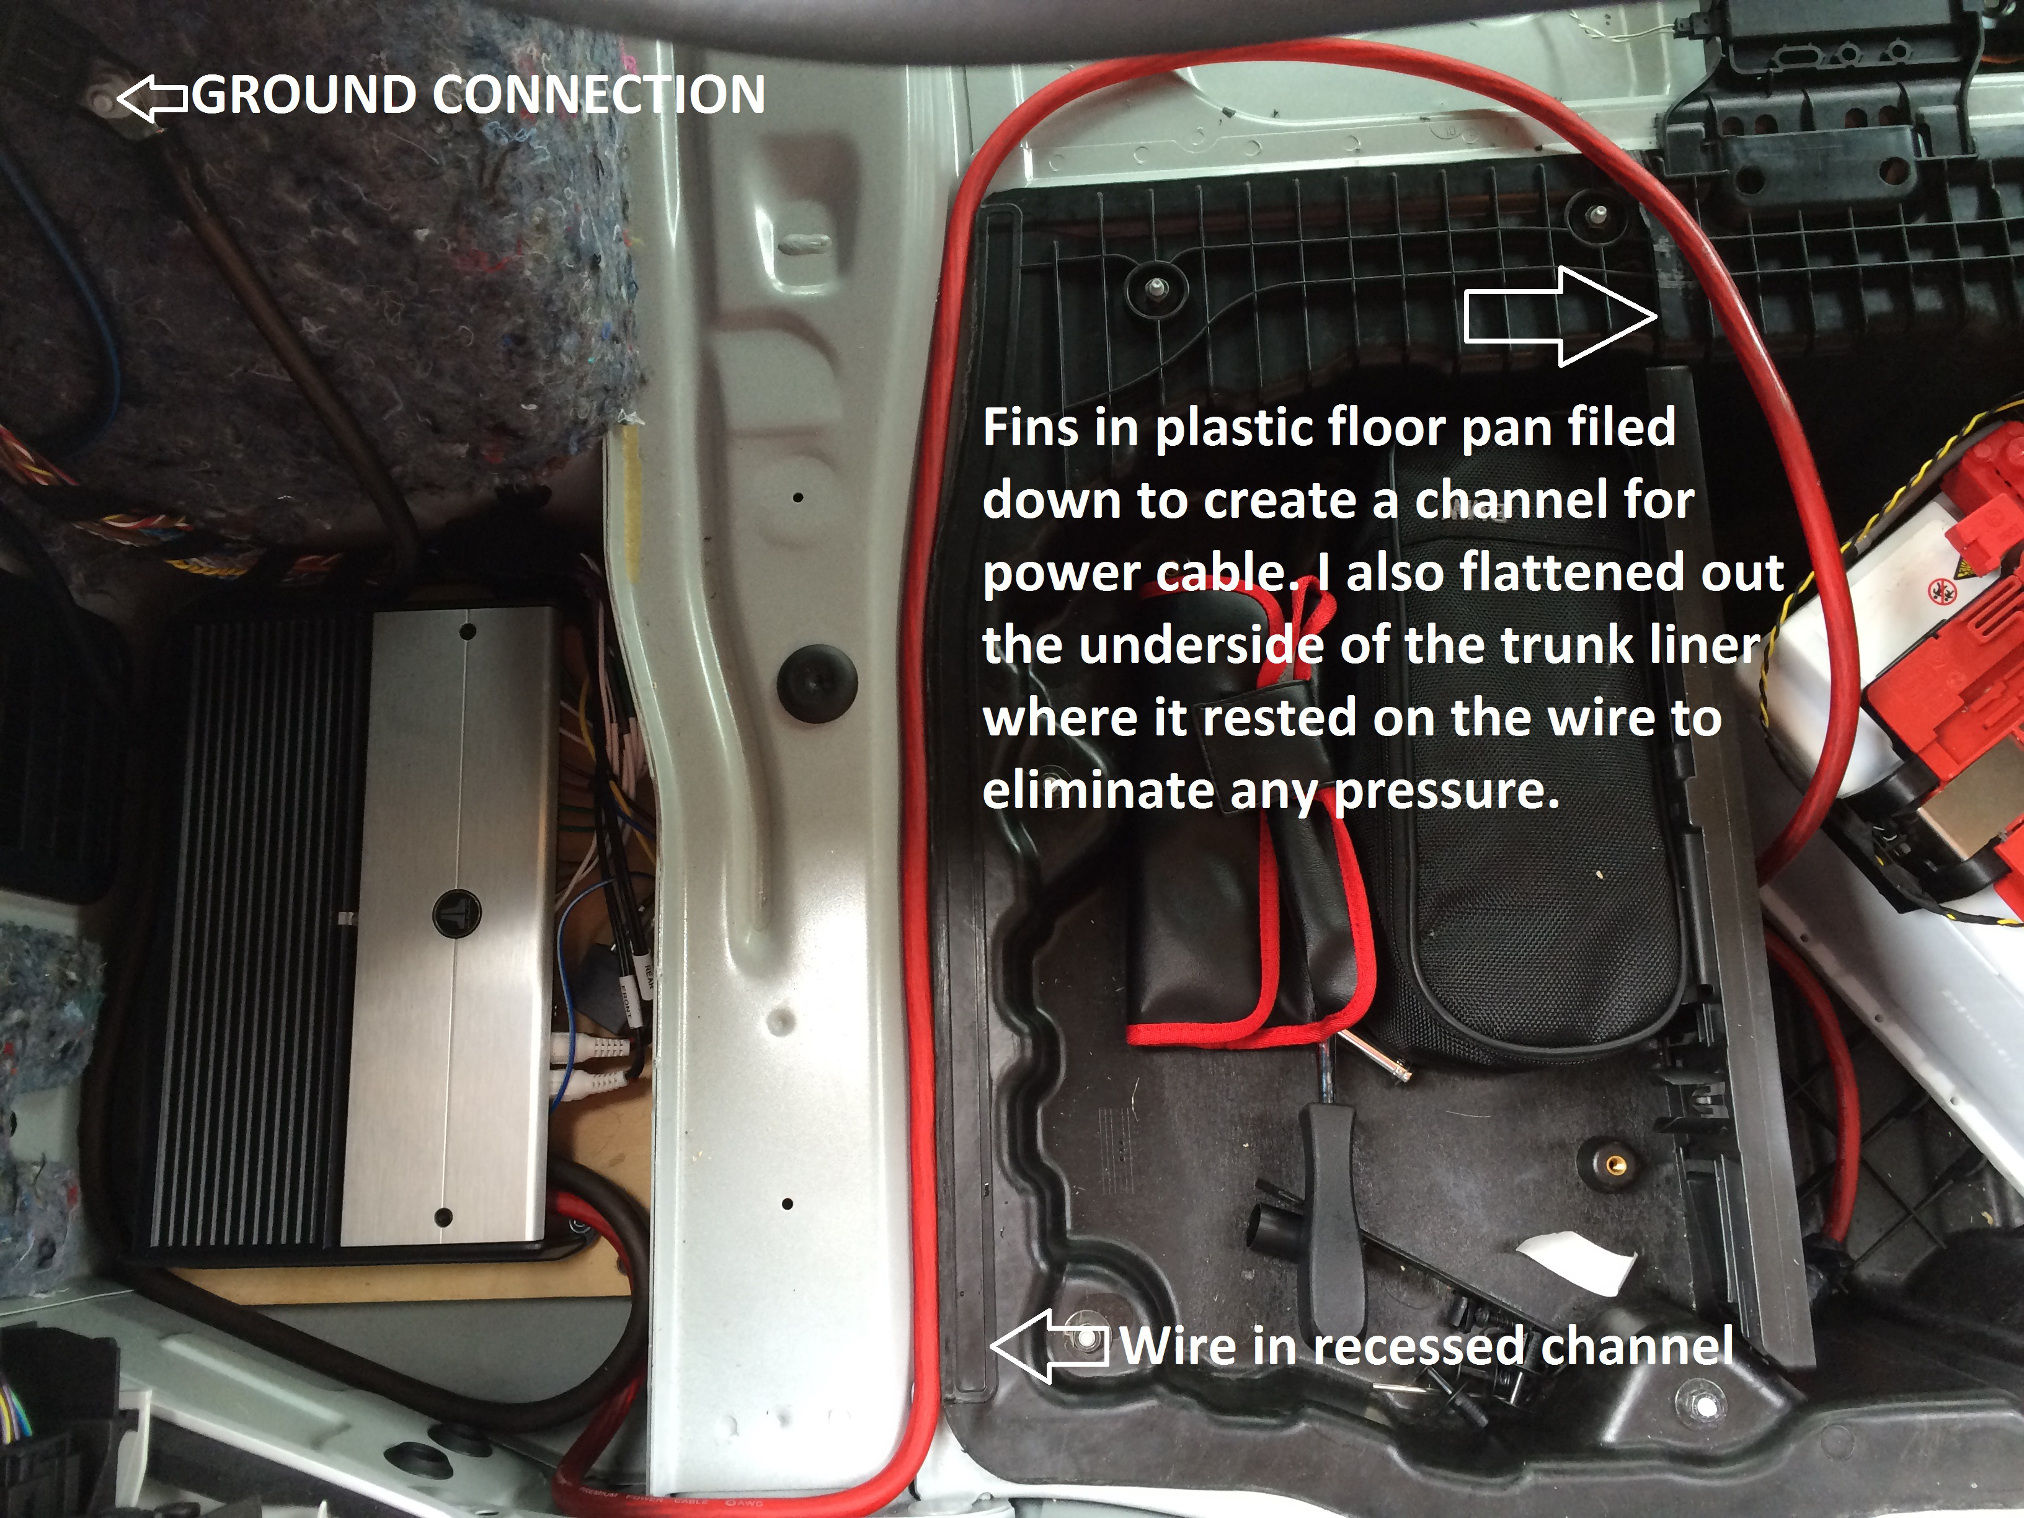 jl audio xd v install technics amp harness attached images